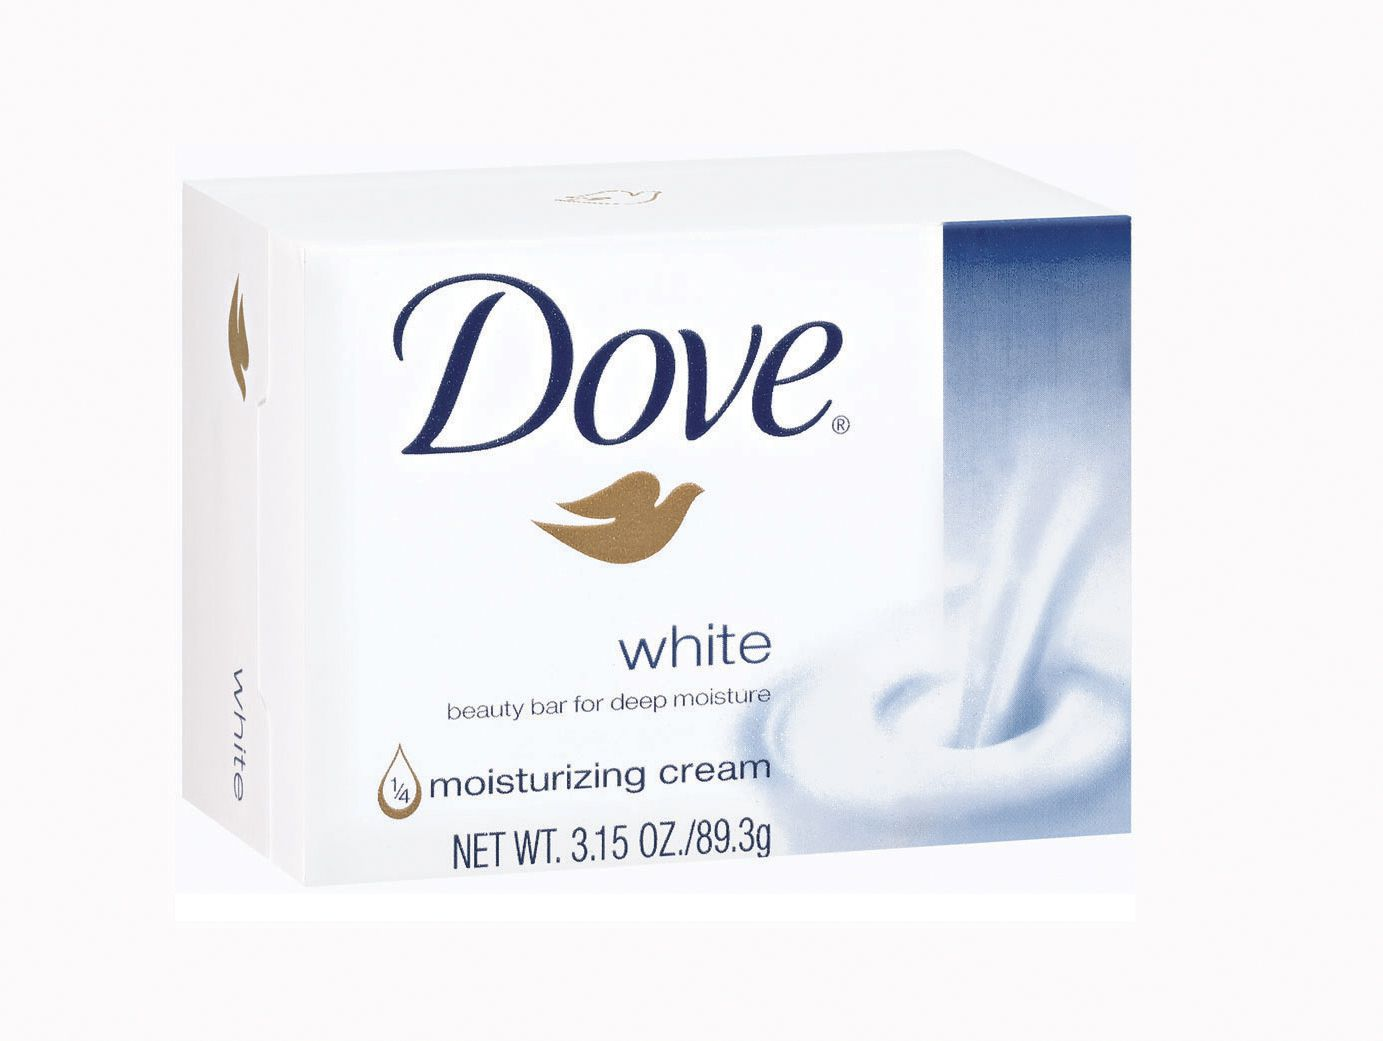 dove soap form features style Nigeria soap, nigeria soap suppliers and manufacturers directory - source a large selection of soap products at bath soap ,chemicals for making liquid soap ,soap making machine from nigeria.